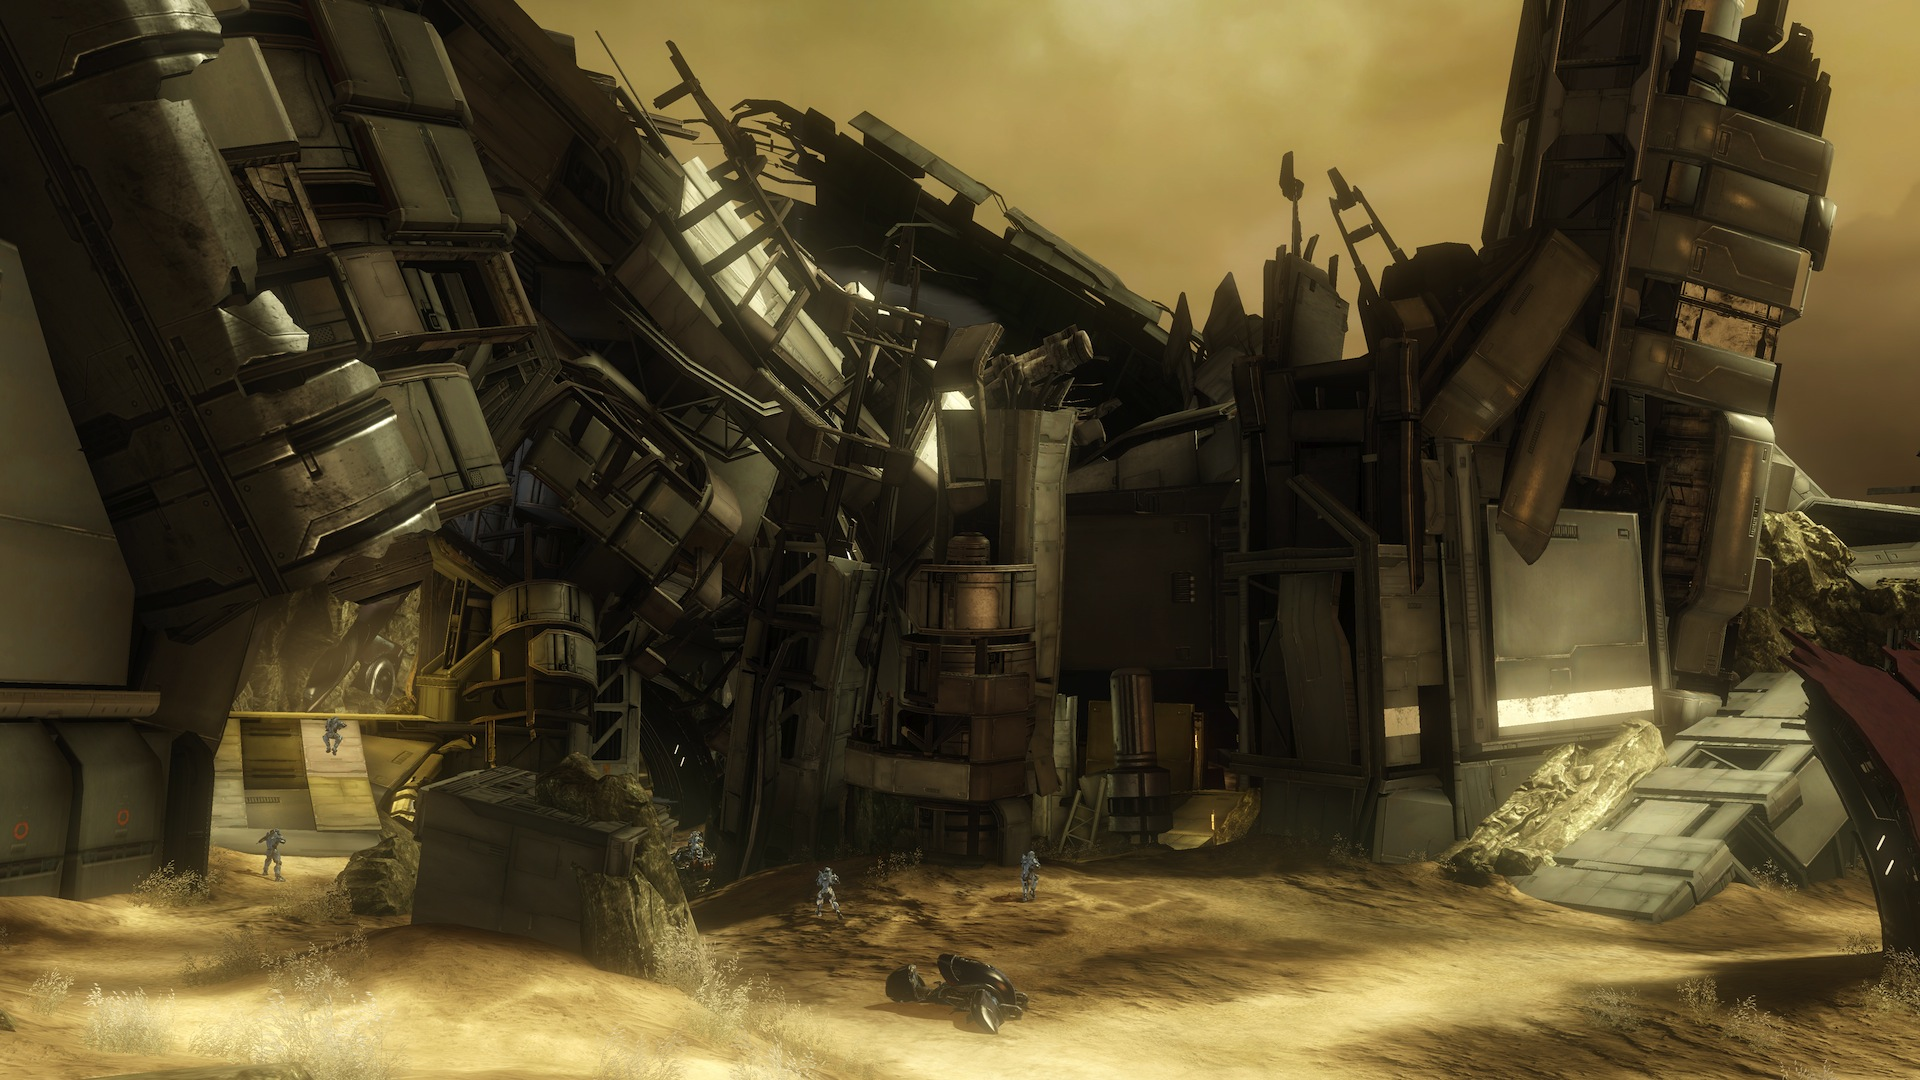 Halo 4 Wreckage screenshot